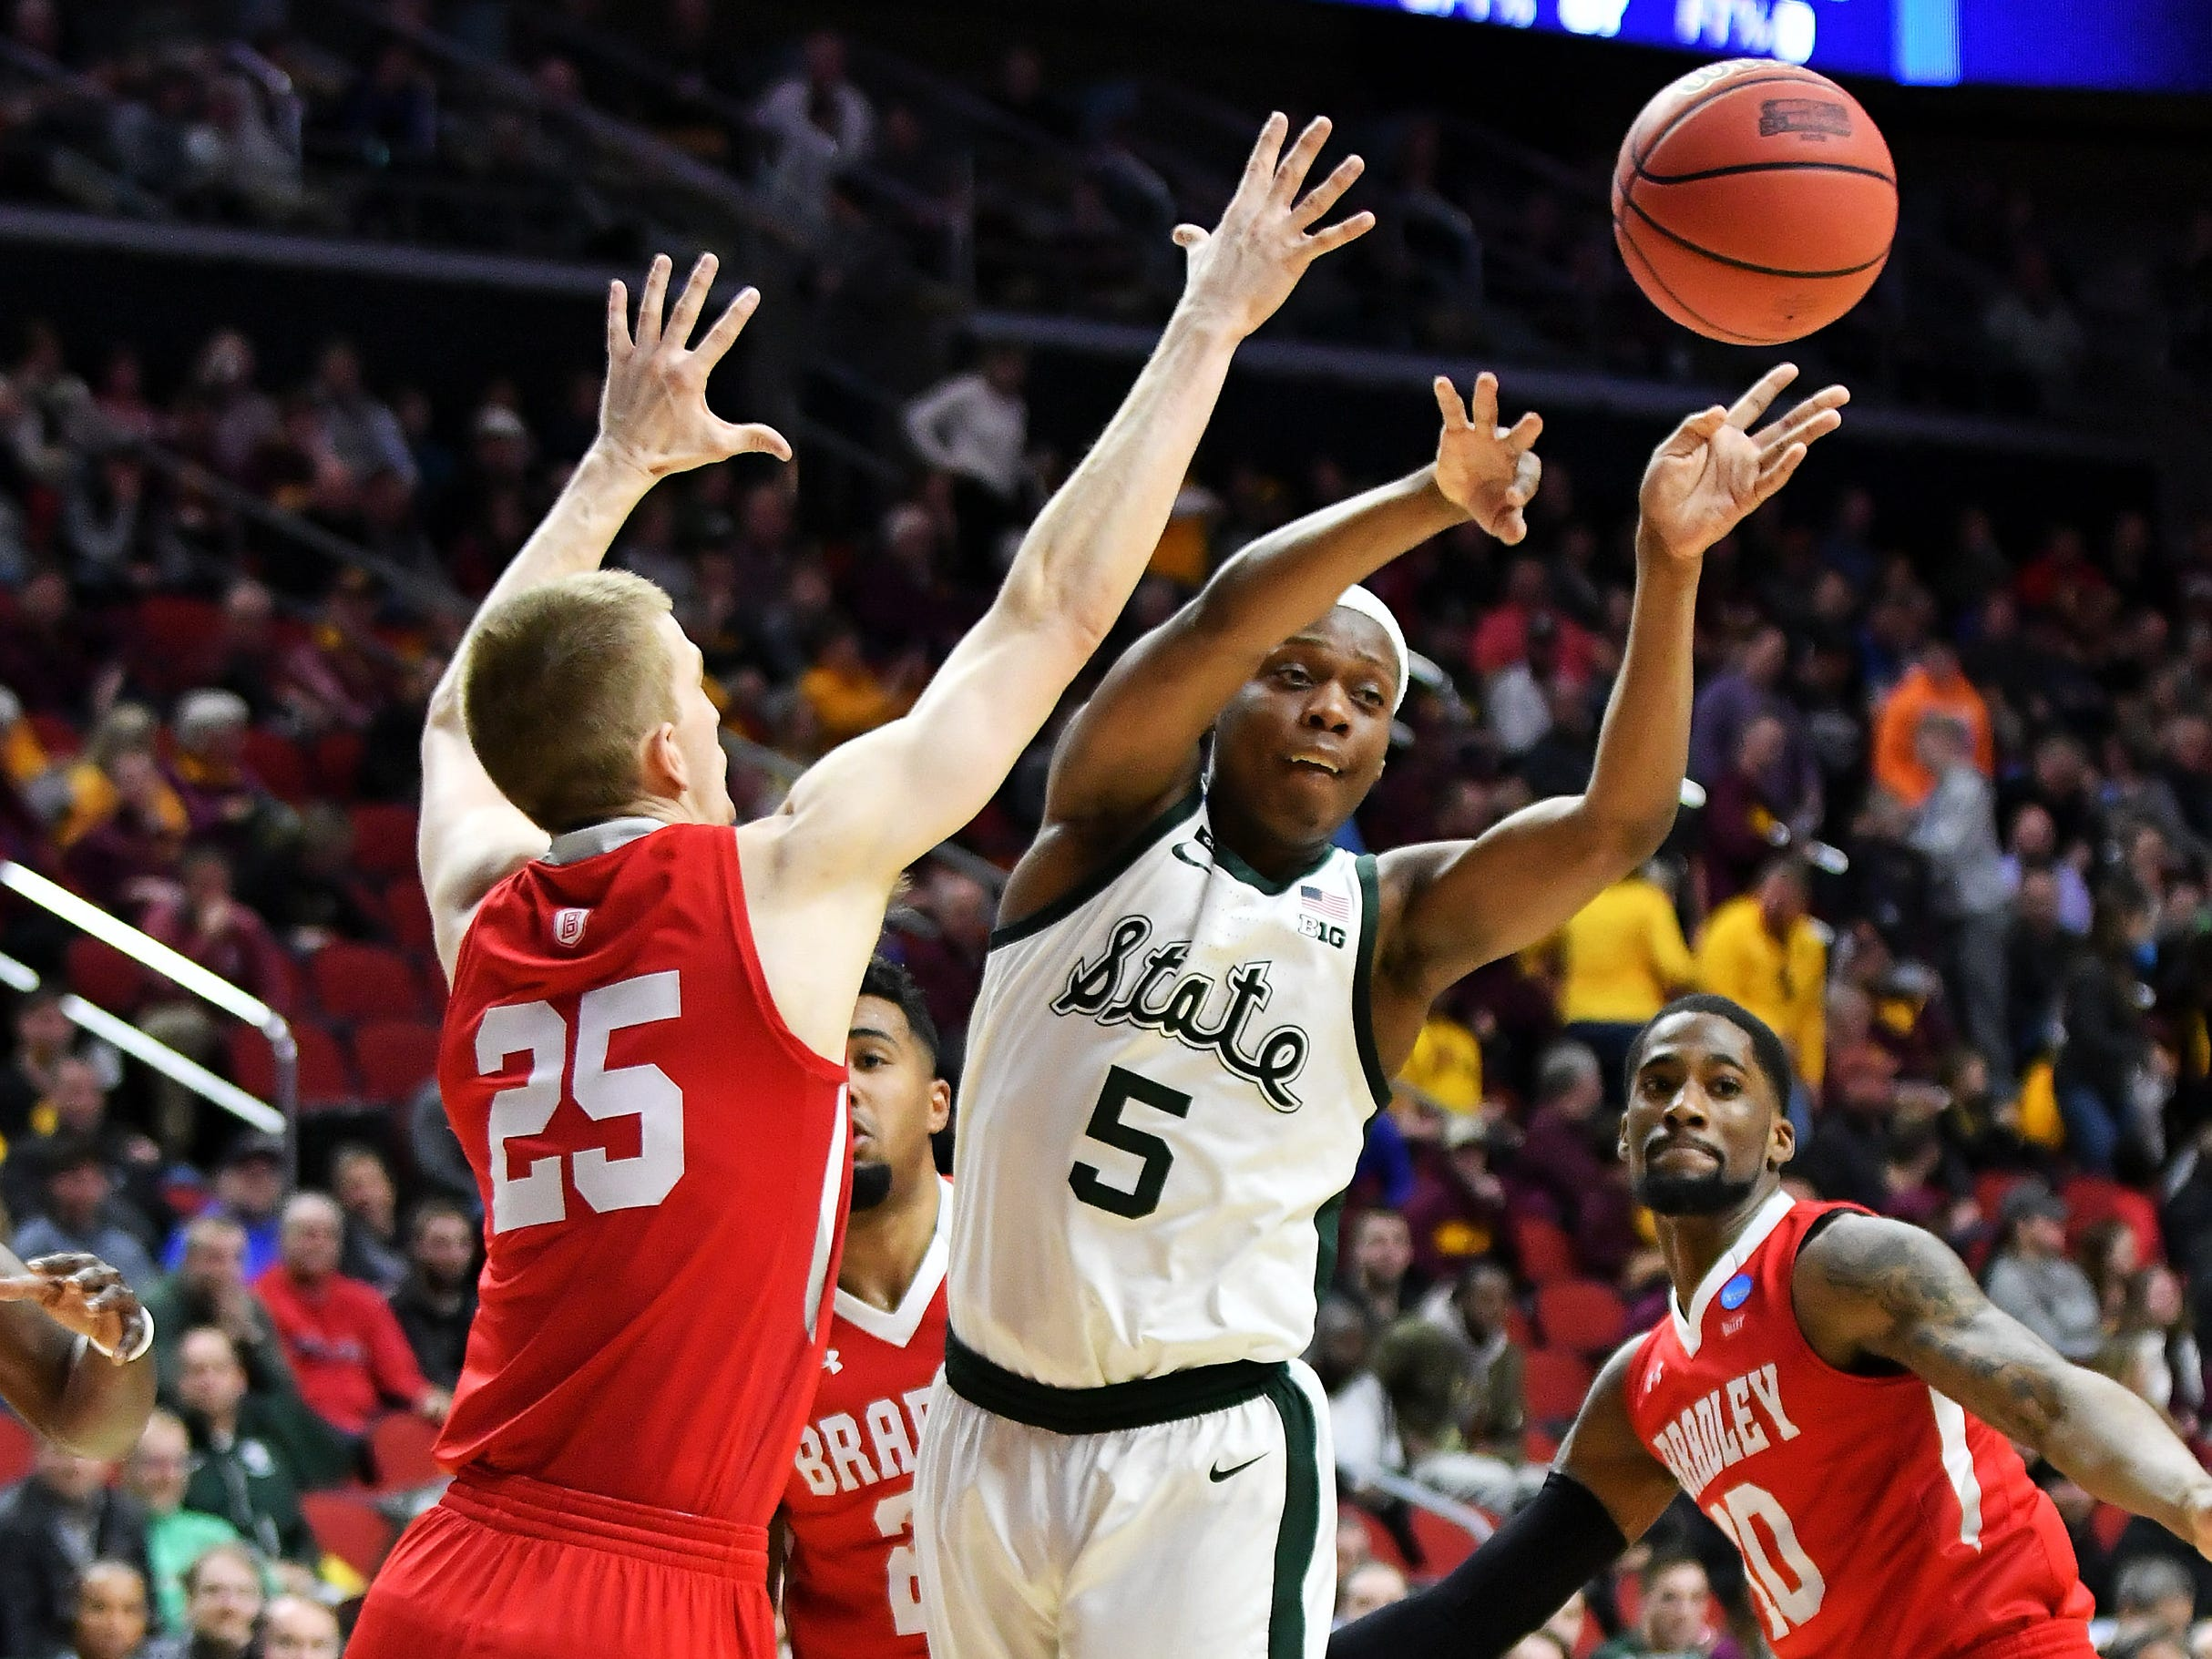 Michigan State guard Cassius Winston passes the ball under pressure from Bradley defenders in the first half.